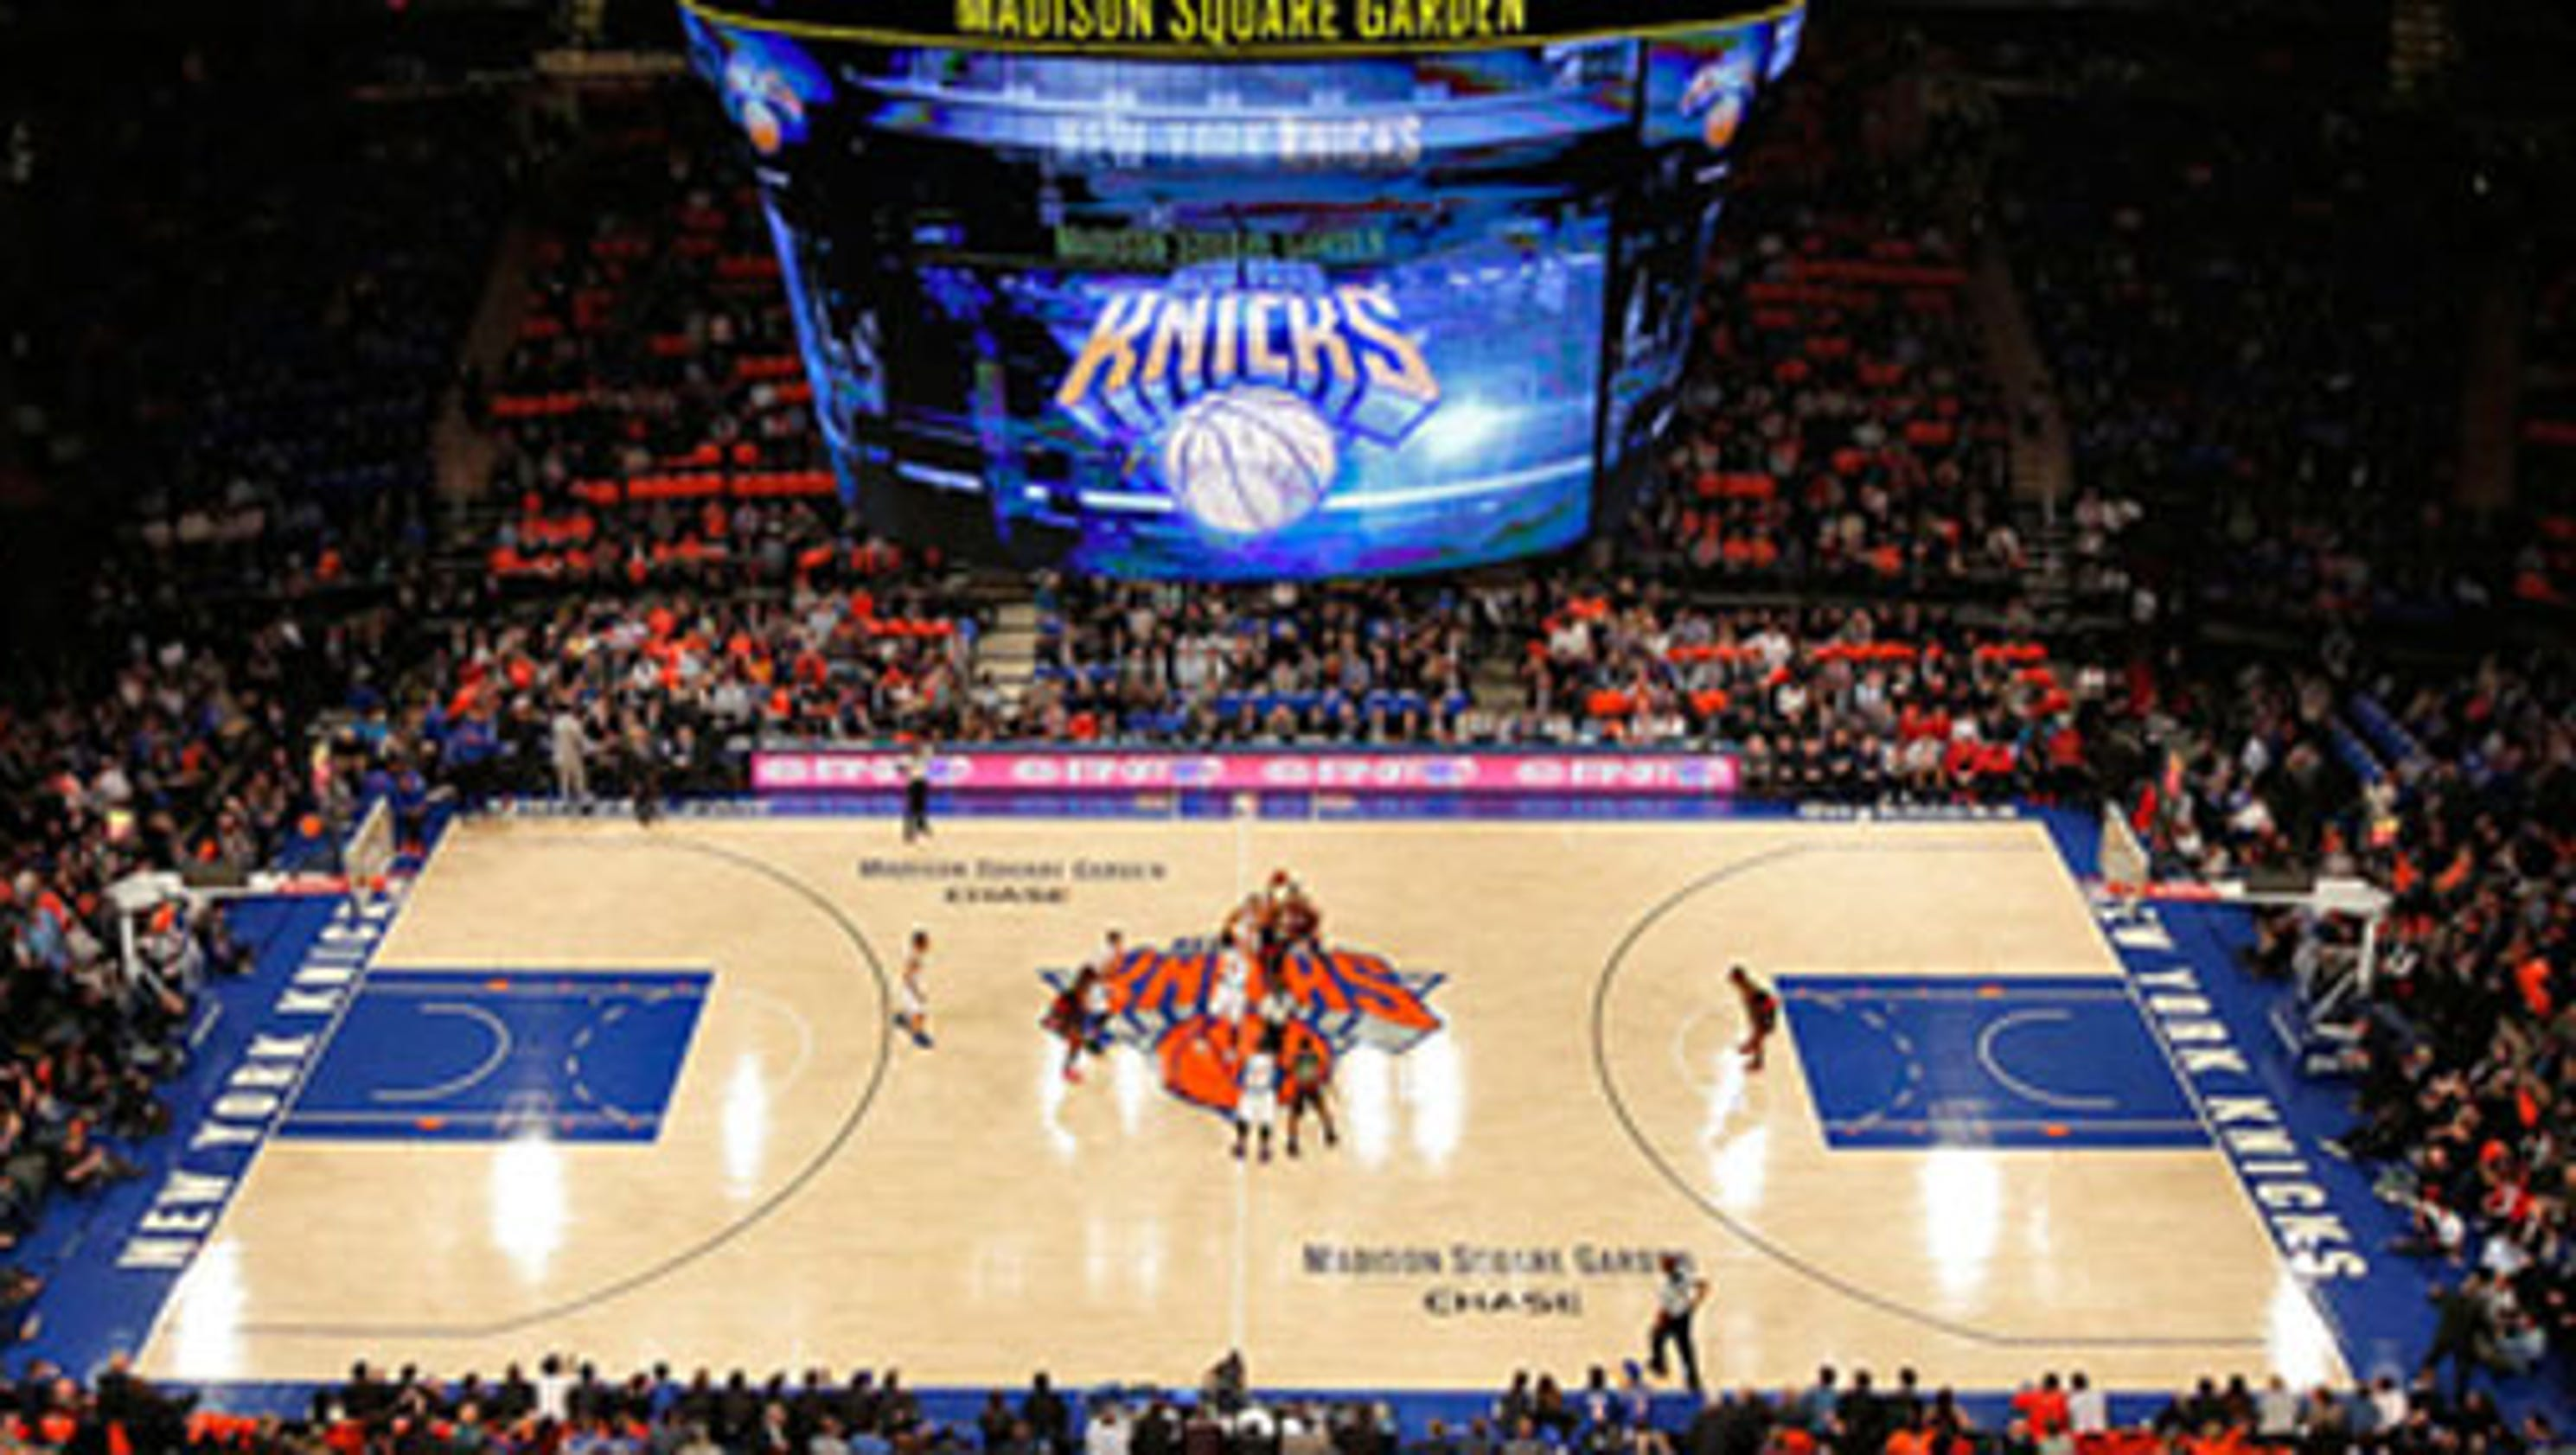 The Best New York Knicks Tickets Unlike any other ticket site, TickPick is the only place where you can sort New York Knicks tickets based on the seat quality. If you are looking for the best seats within a few sections, this feature is tremendously helpful.